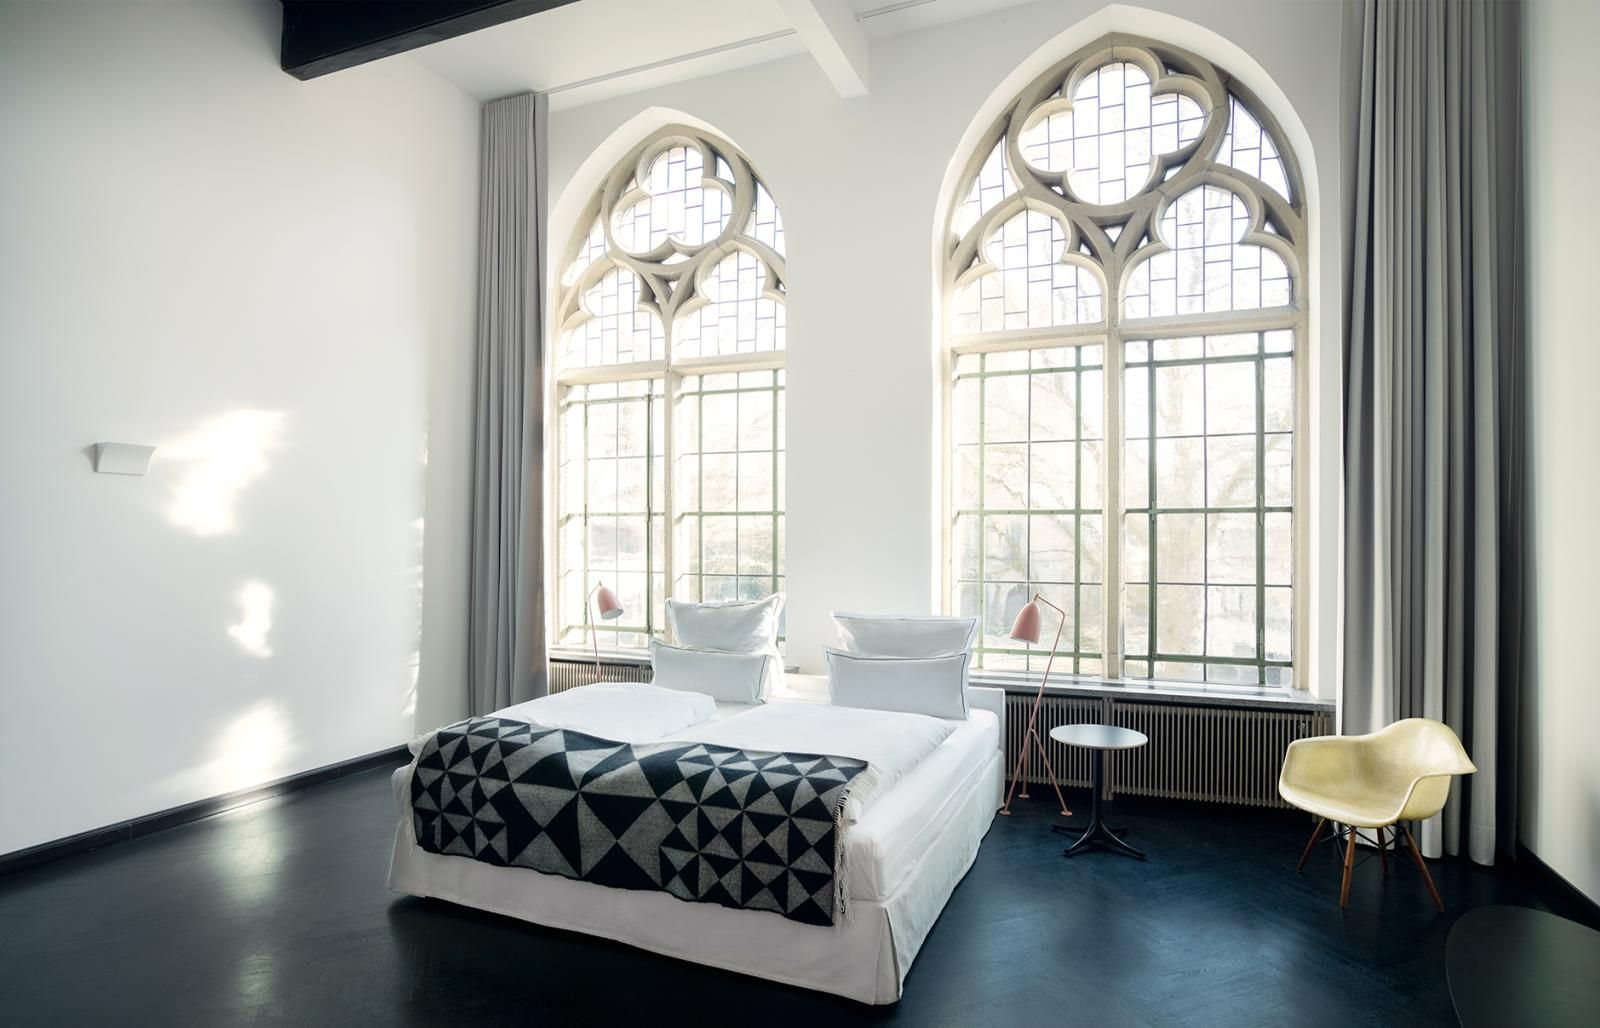 This Hotel Blends Neo Gothic Architecture With Modern Design Beautifully One Of Germanys Coolest Spots